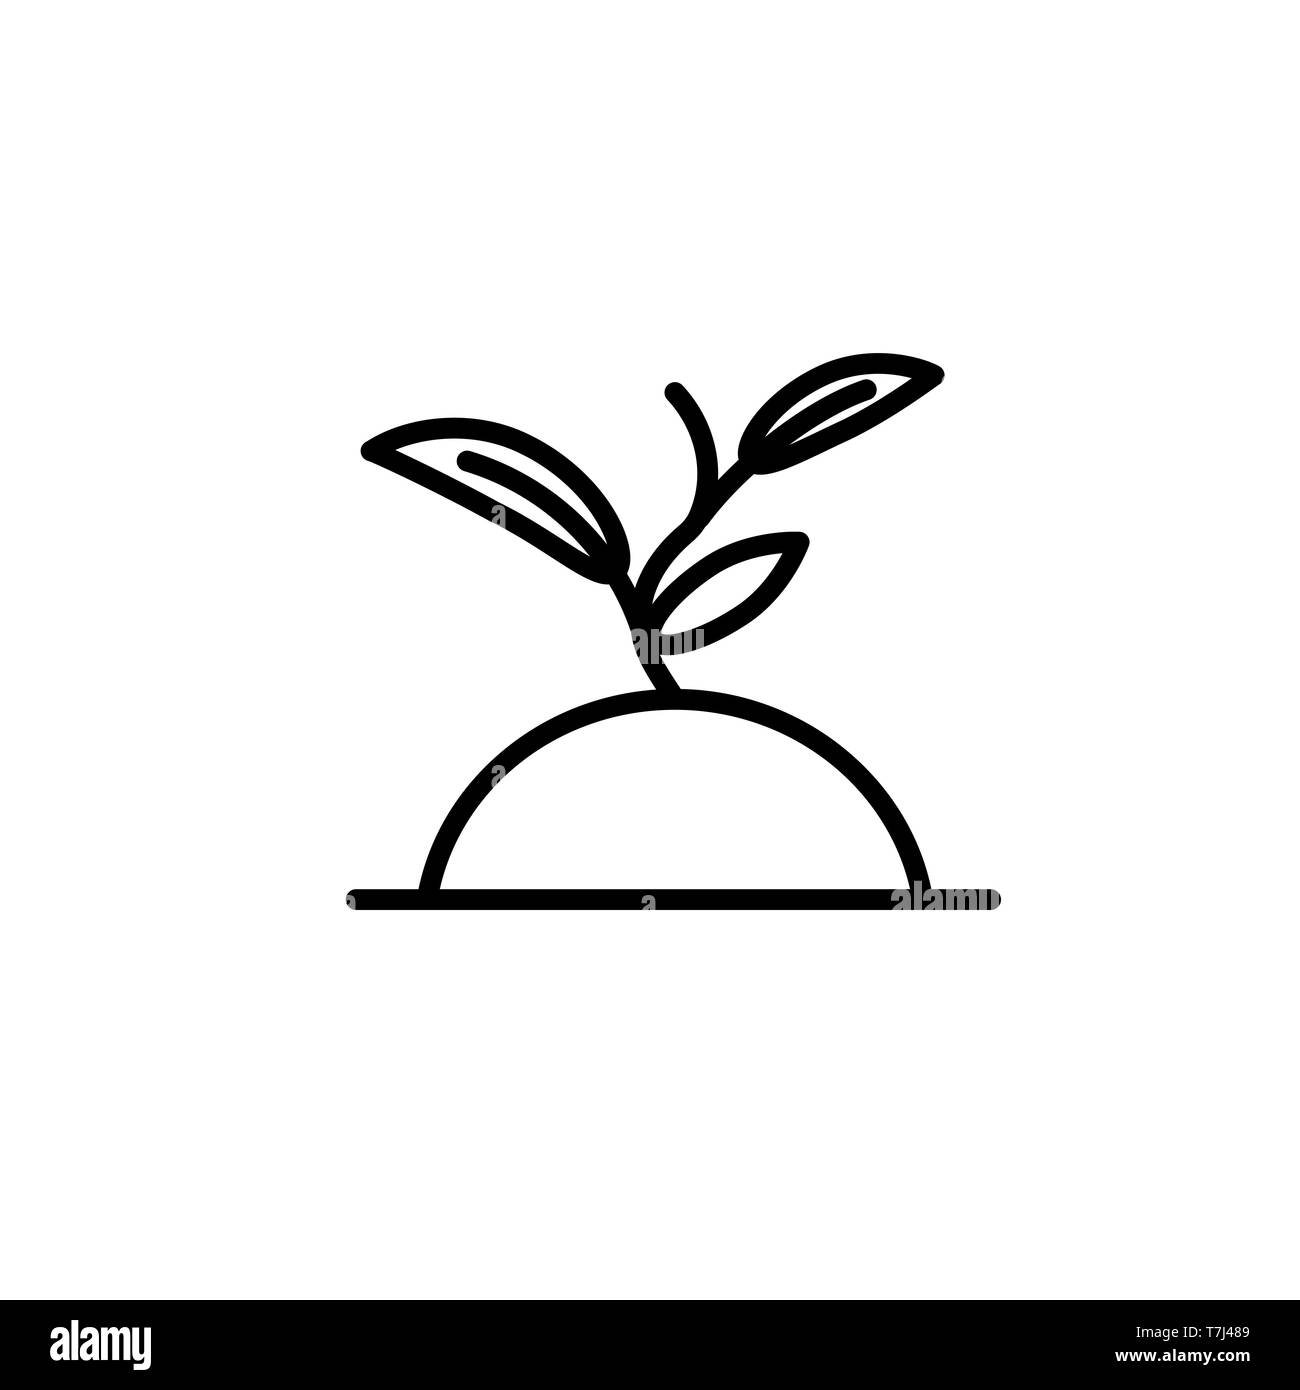 Sprout line icon isolated on white background. Outline thin simple seedling vector. - Stock Vector